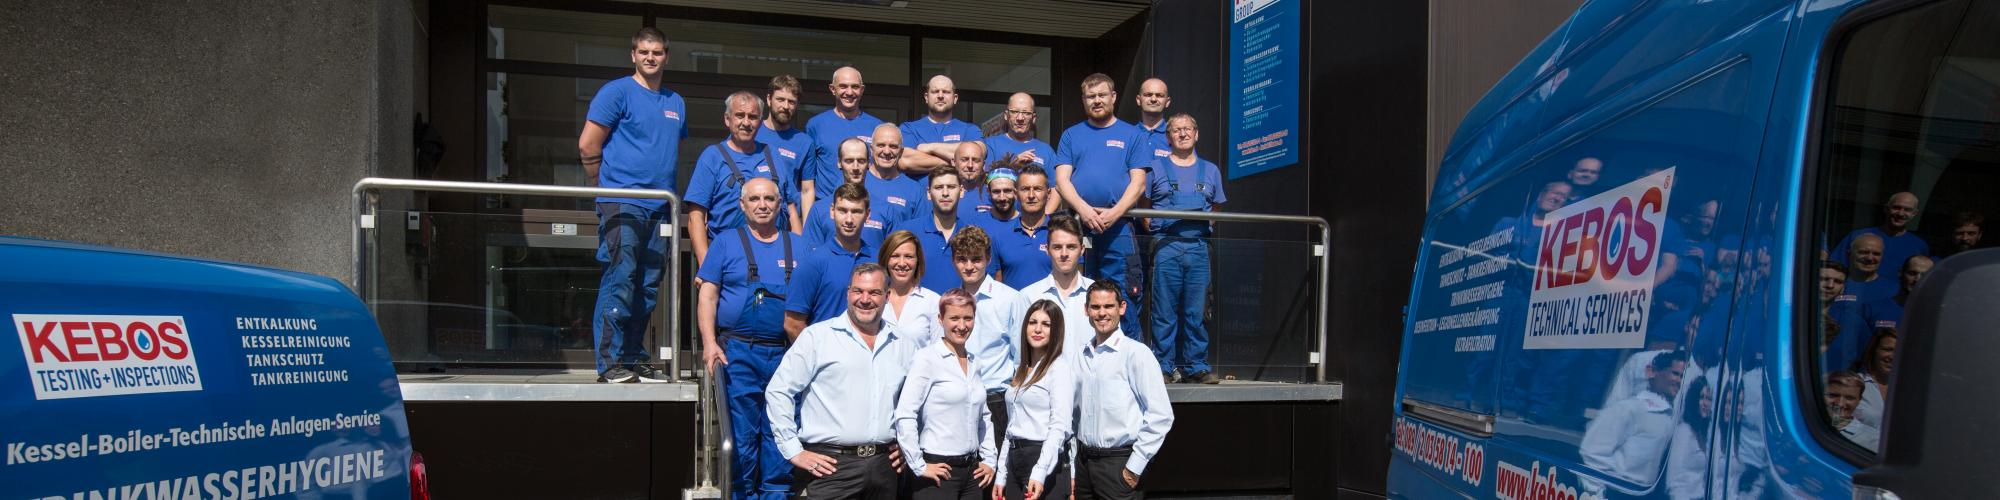 KEBOS Technical Services GmbH